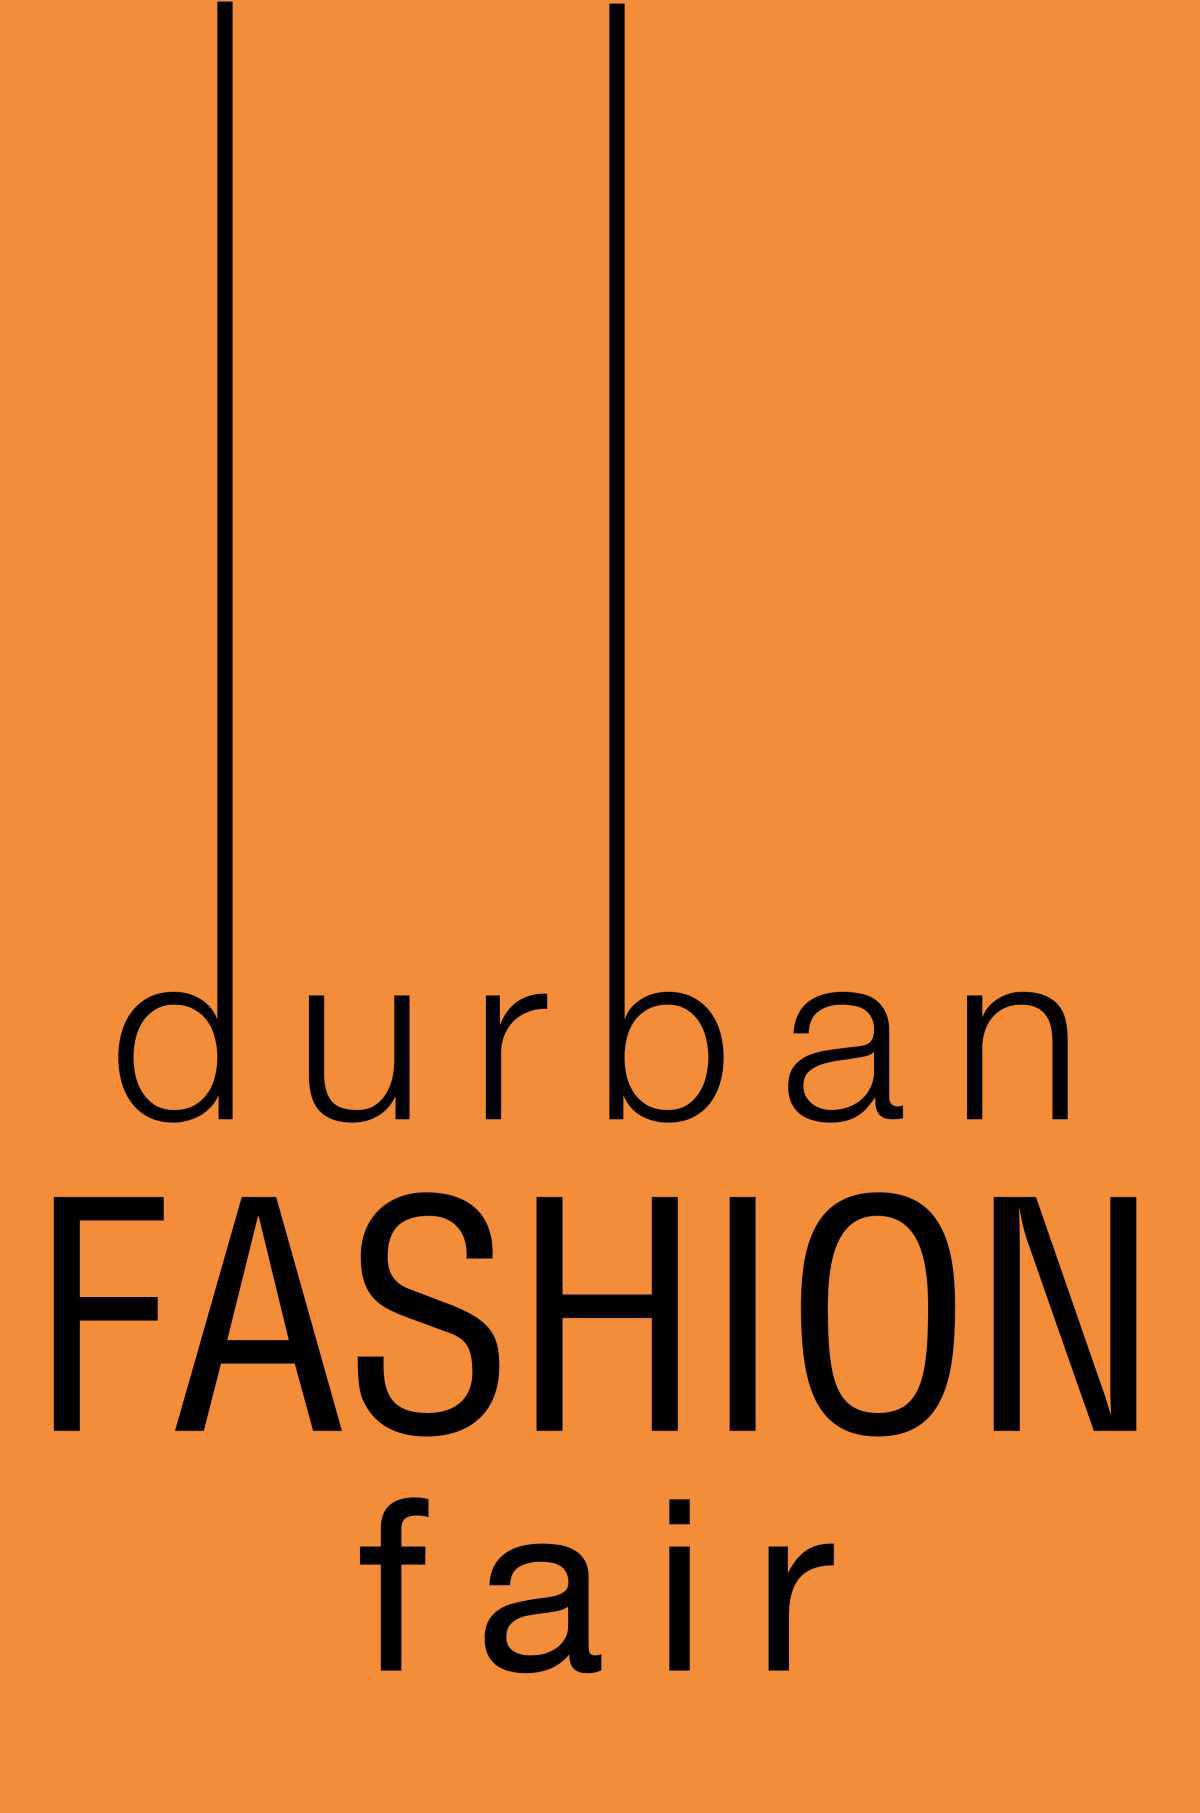 Registration for the 22nd Annual Durban Business Fair is open